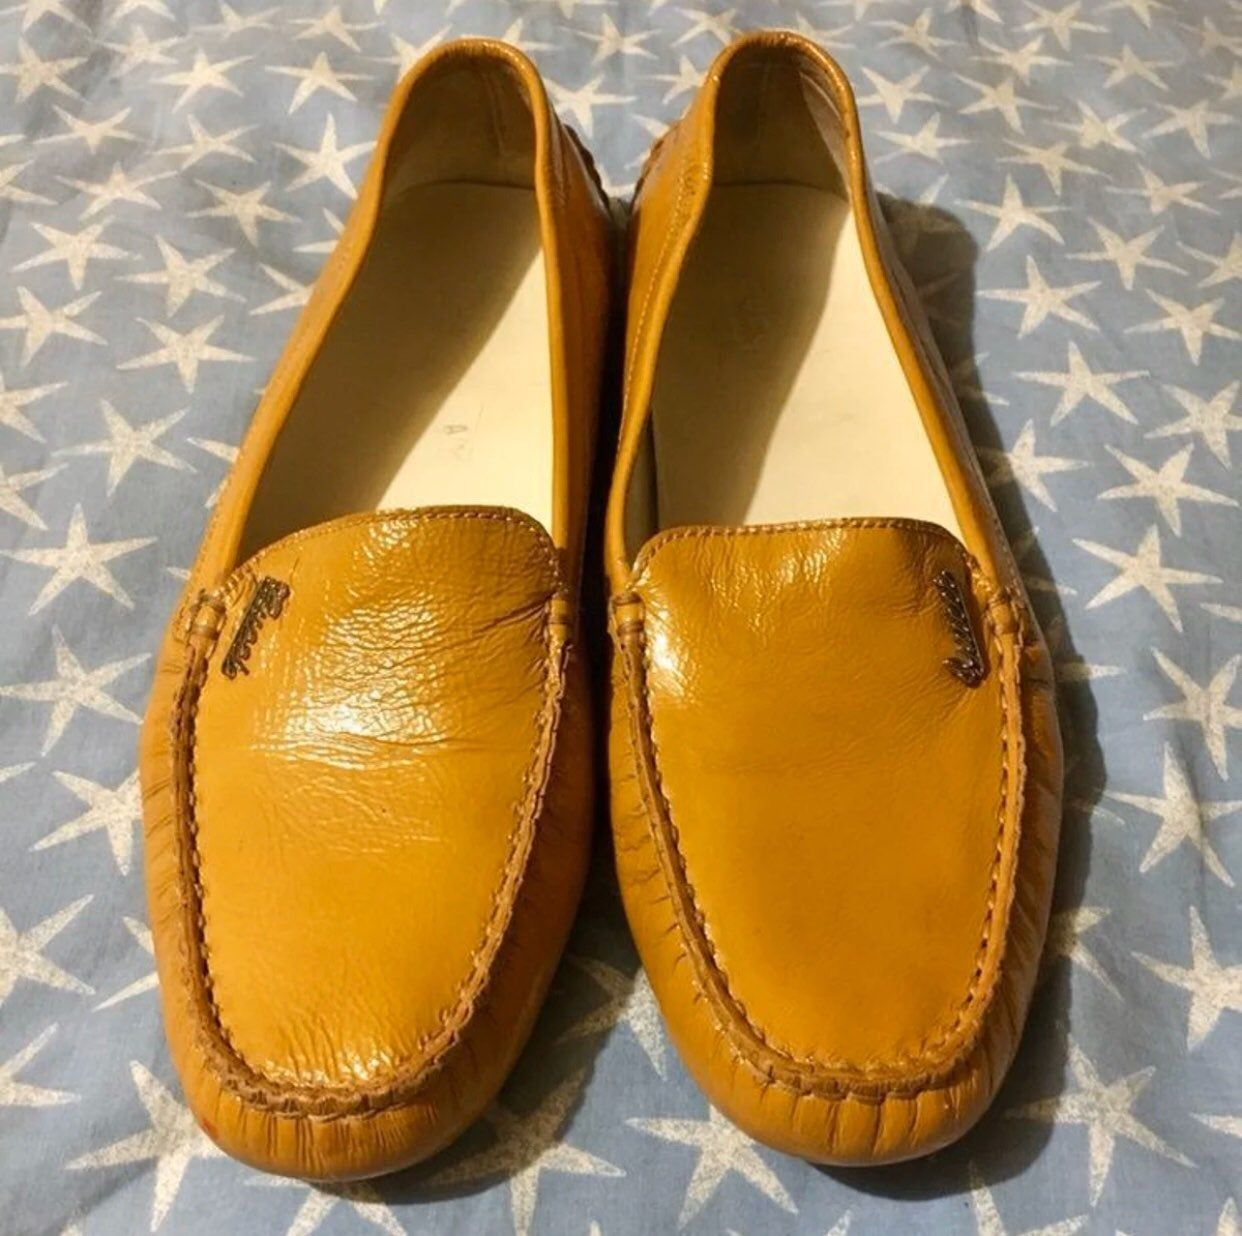 USED Gucci Patent Leather Driving